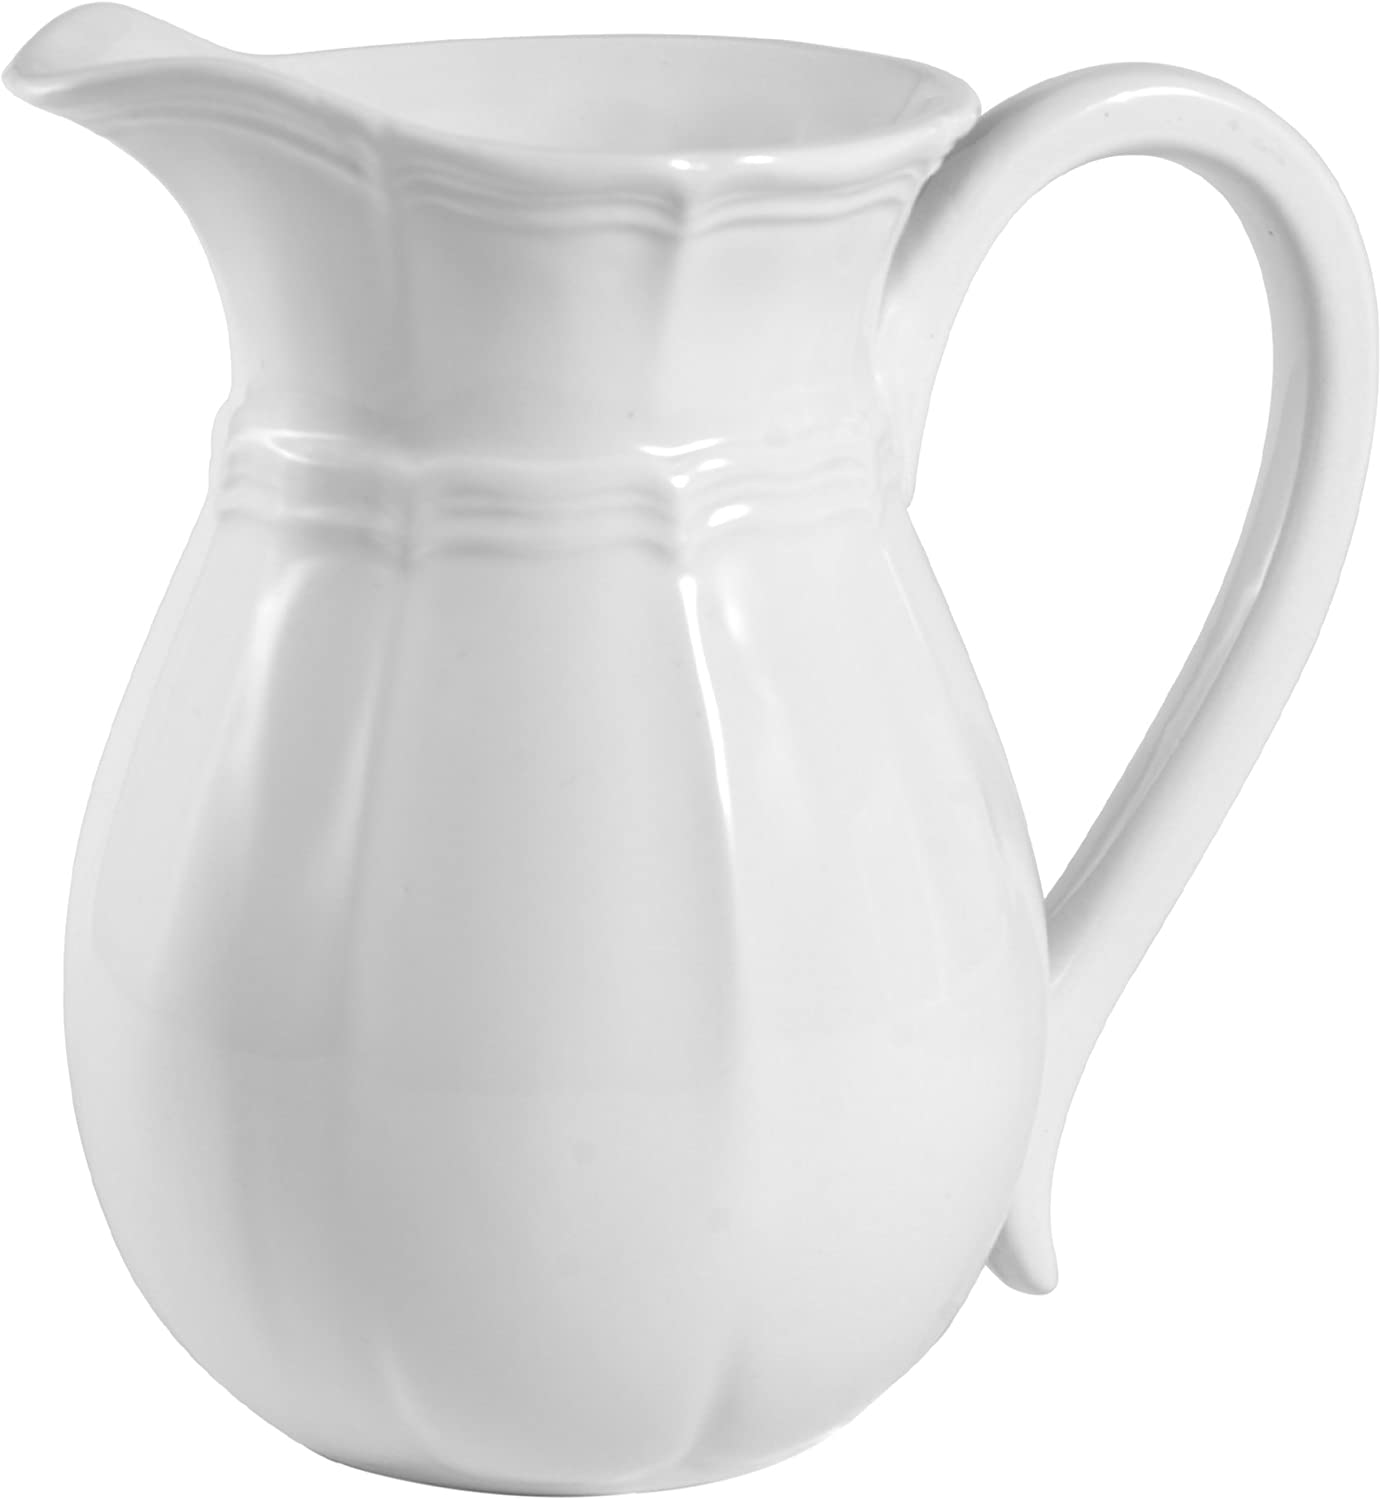 Mikasa French Countryside Pitcher, 47-Ounce, Ivory -